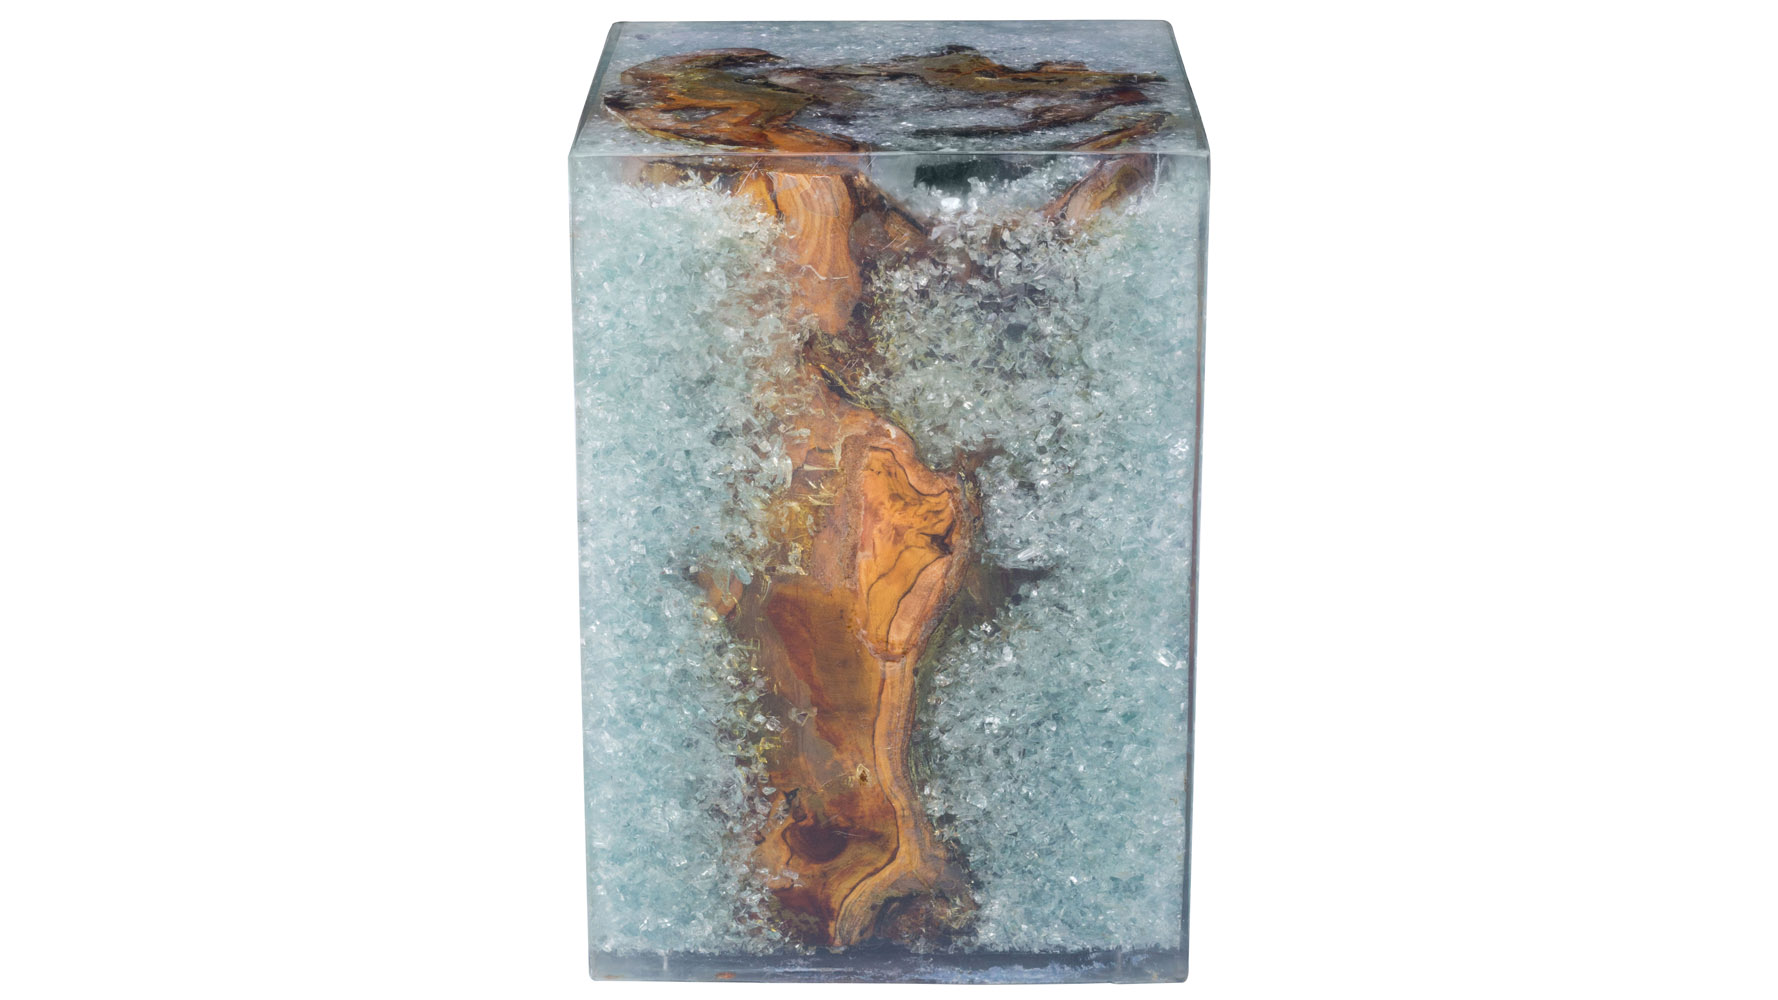 Mira Teak Wood and Glass Stool with Resin Detail, Natural | Zuri ...